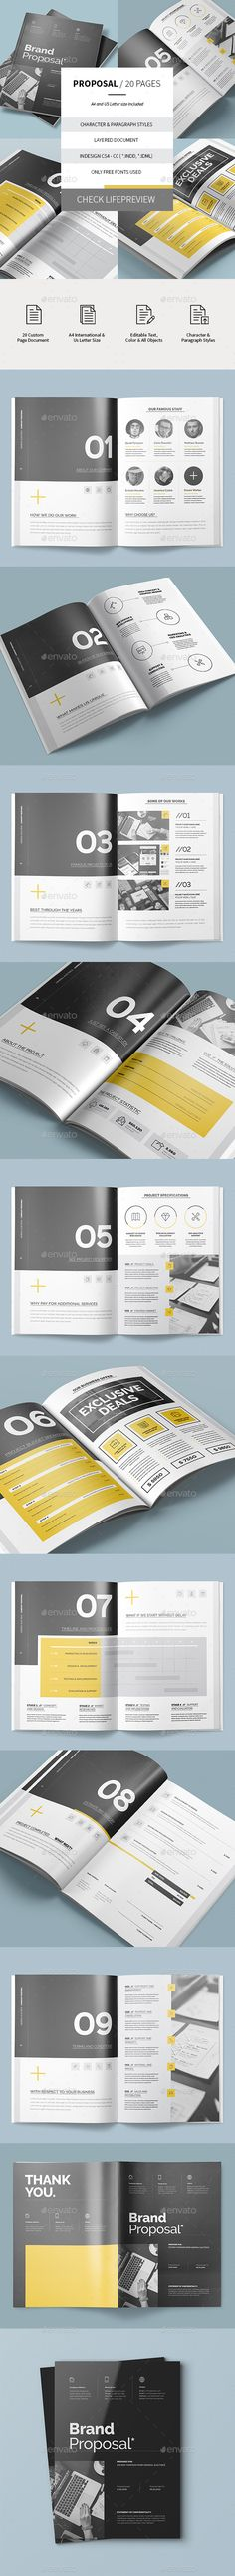 Web Design Proposal Proposals and